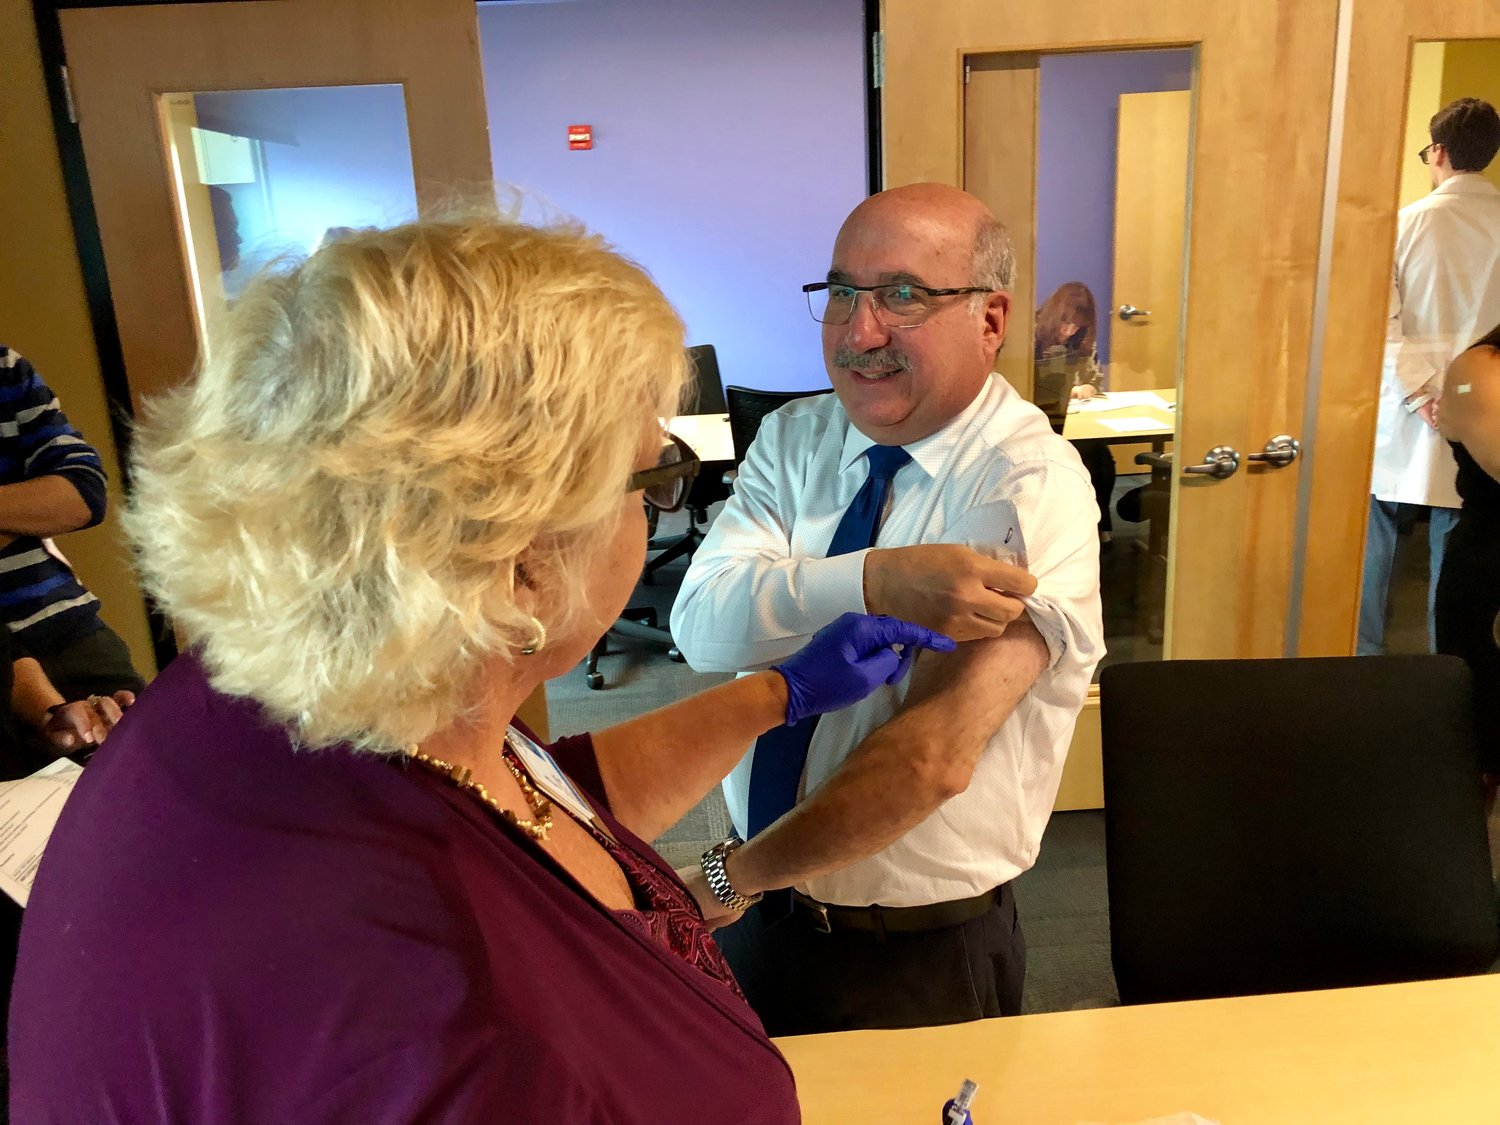 Marty Goldenberg, advertising sales account executive for the Rockville Centre Herald, received his shot from Kate Zummo, MSSN director of community education and a registered nurse.